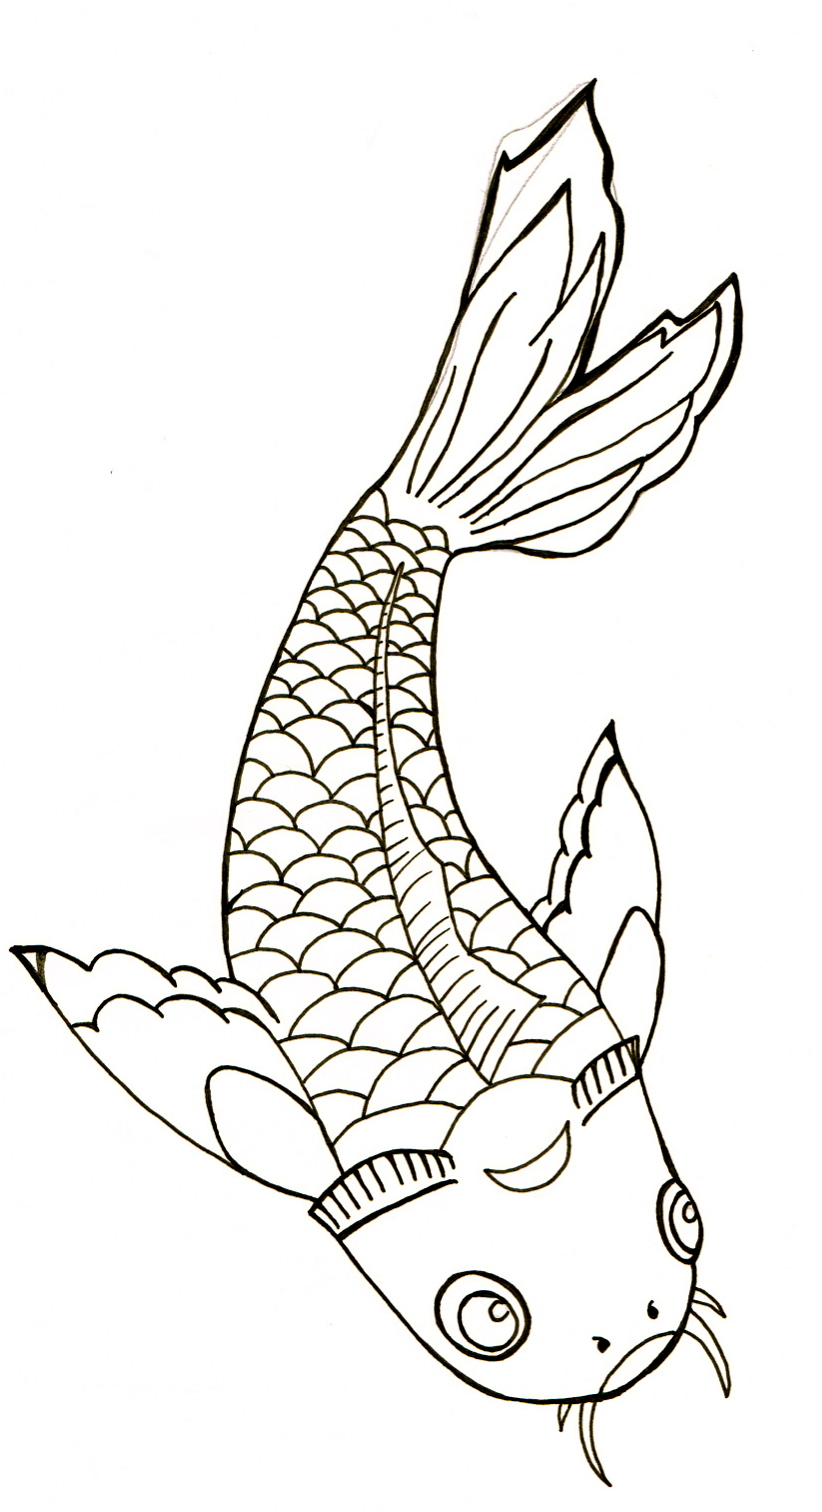 Koi Line Drawing By Peaches1993 On Deviantart